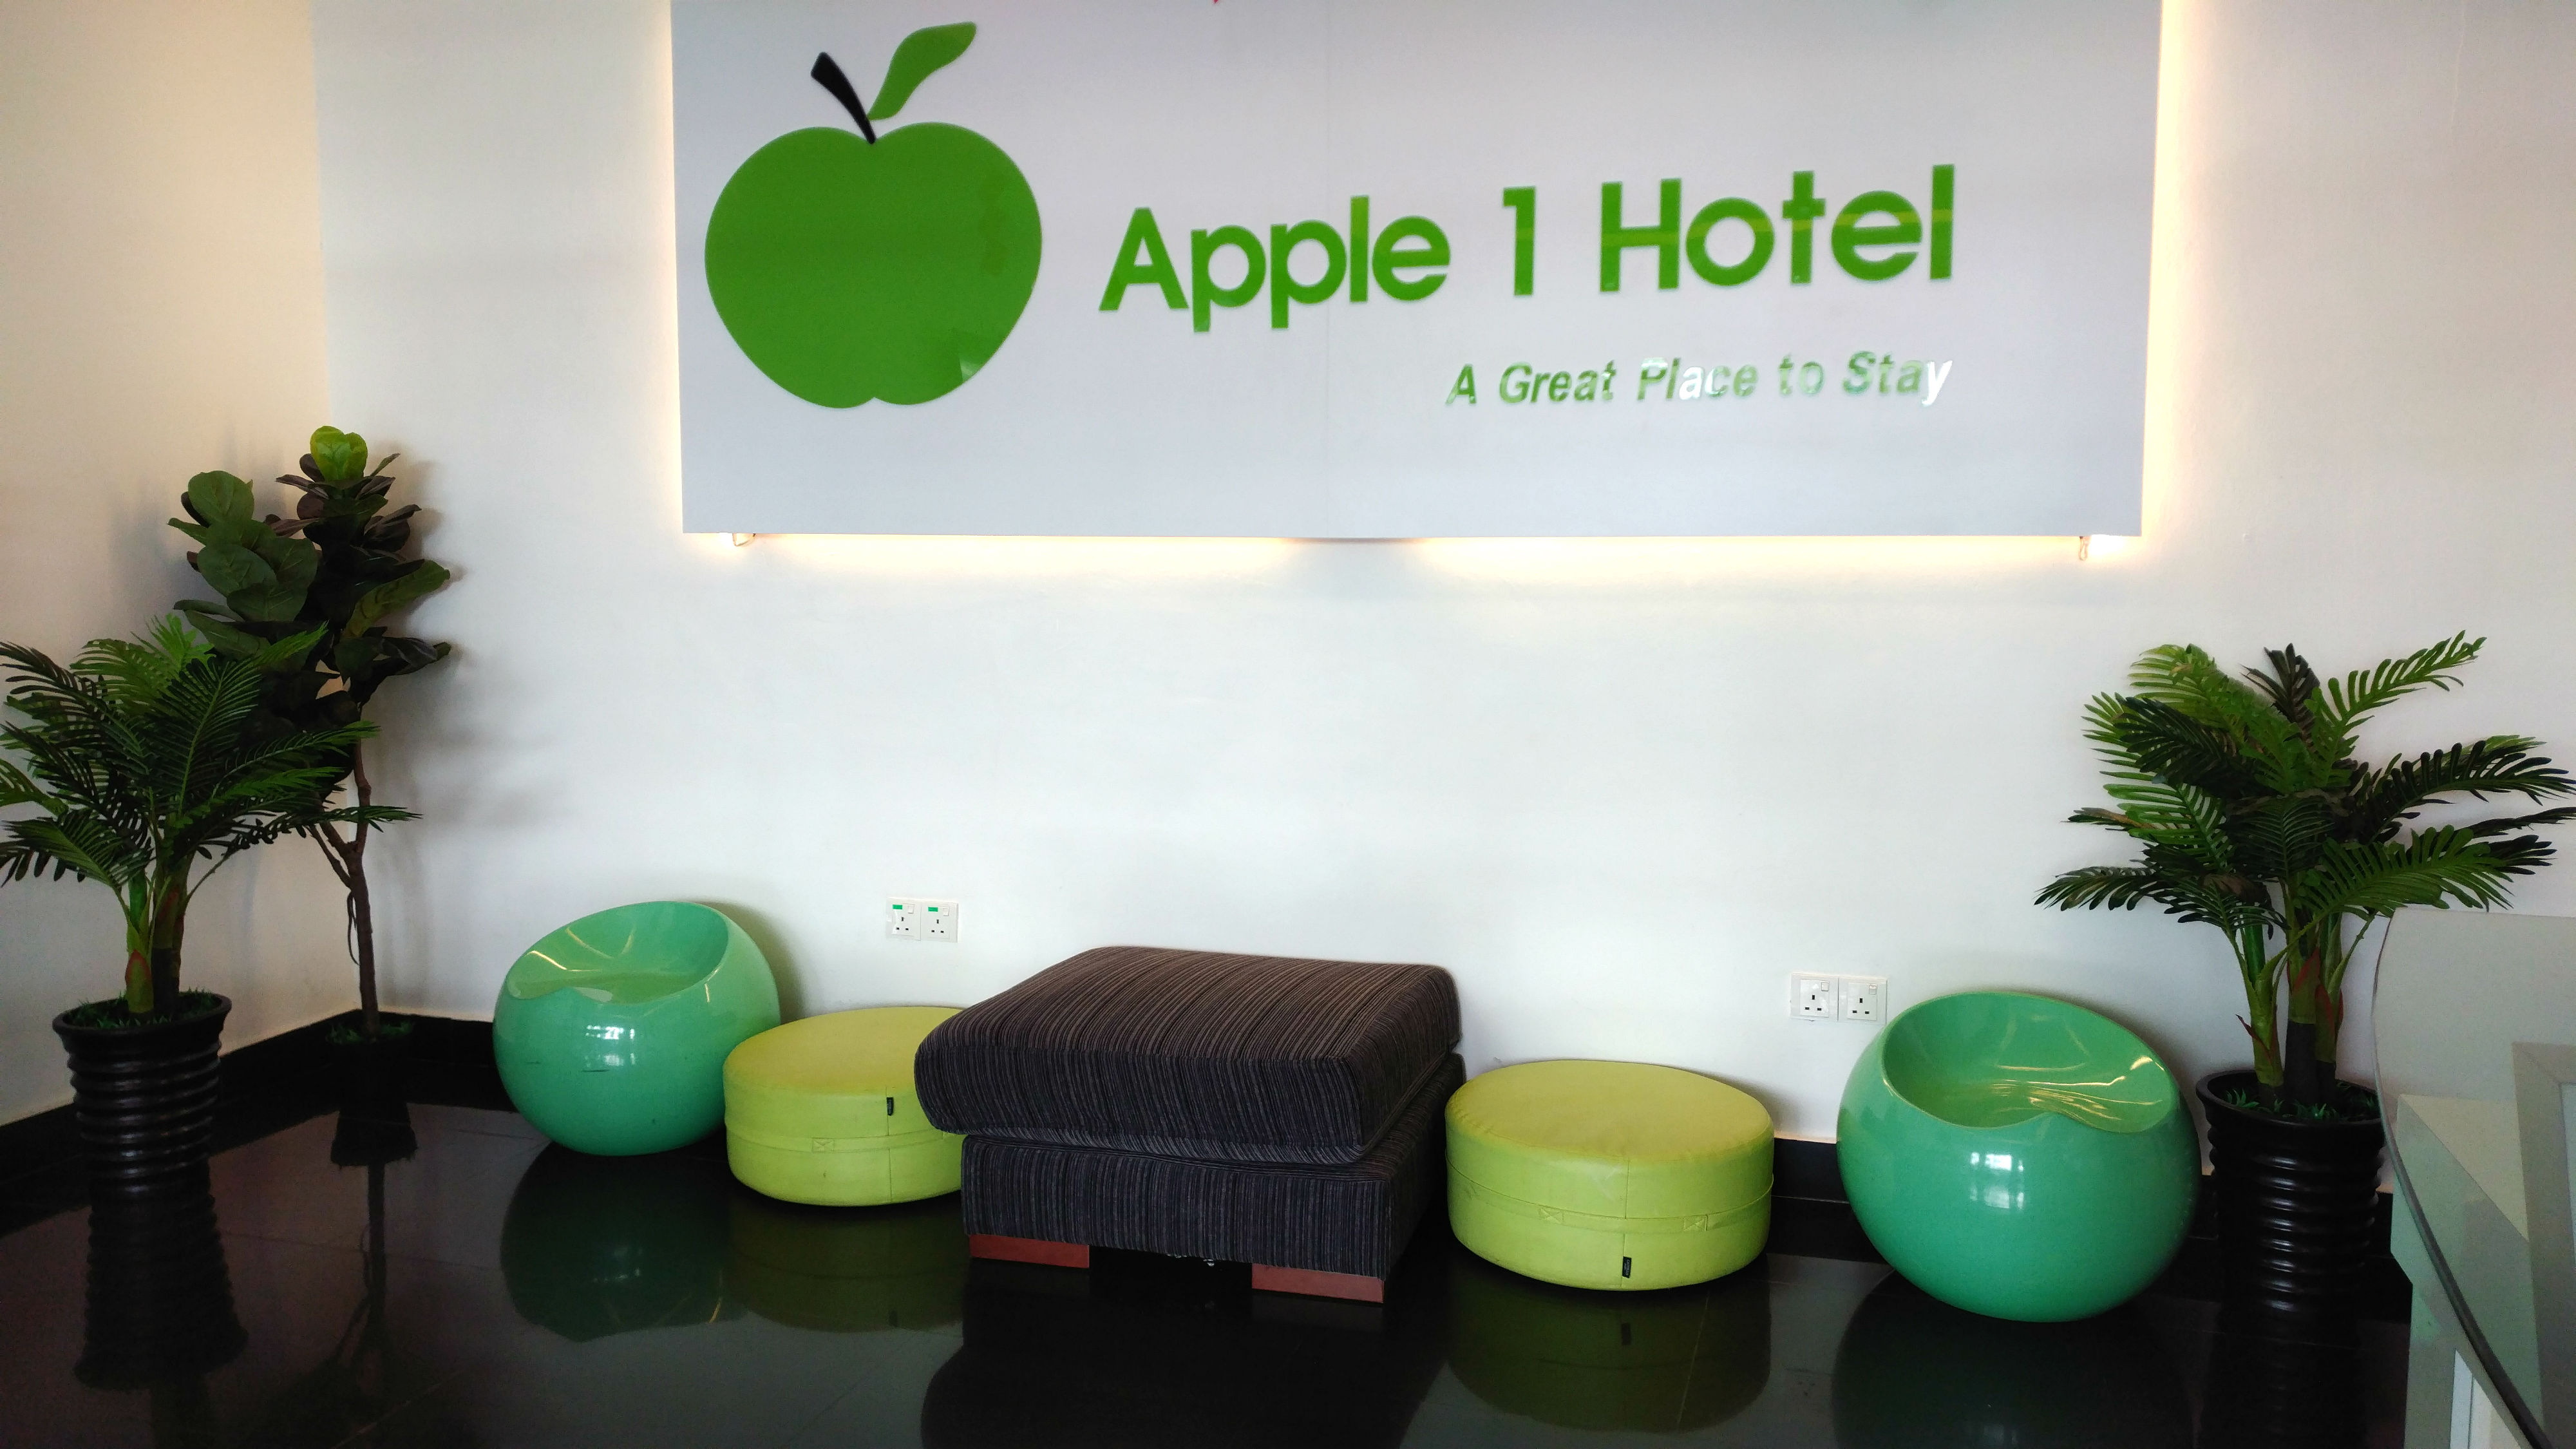 Apple 1 Hotel Queensbay Lobby Area